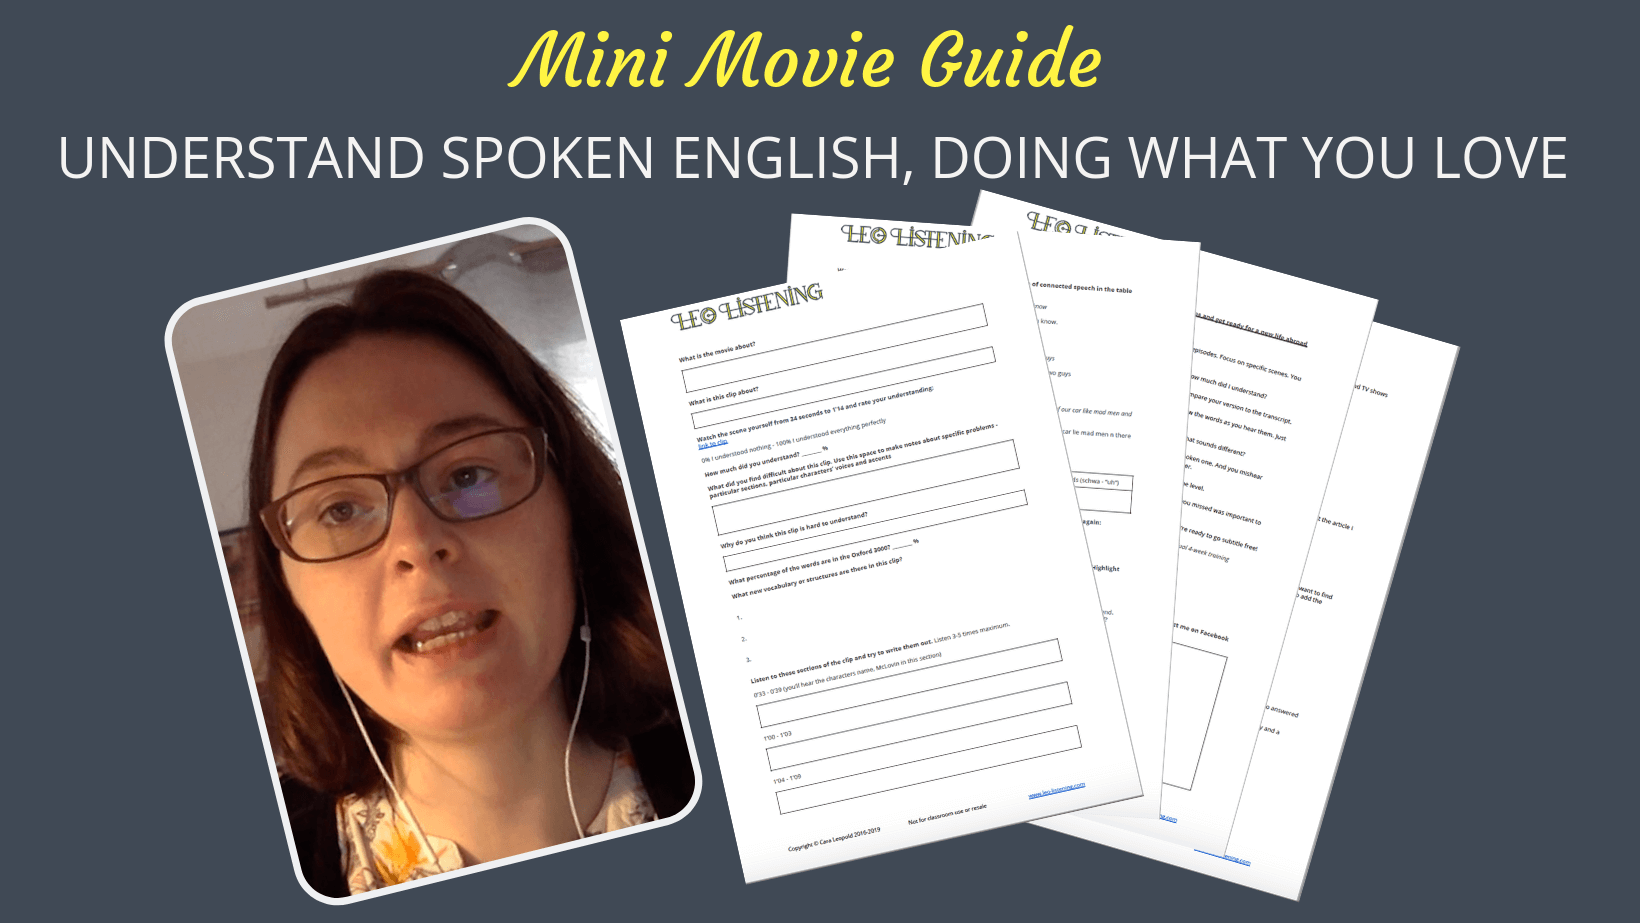 movie-guide-understand-spoken-English